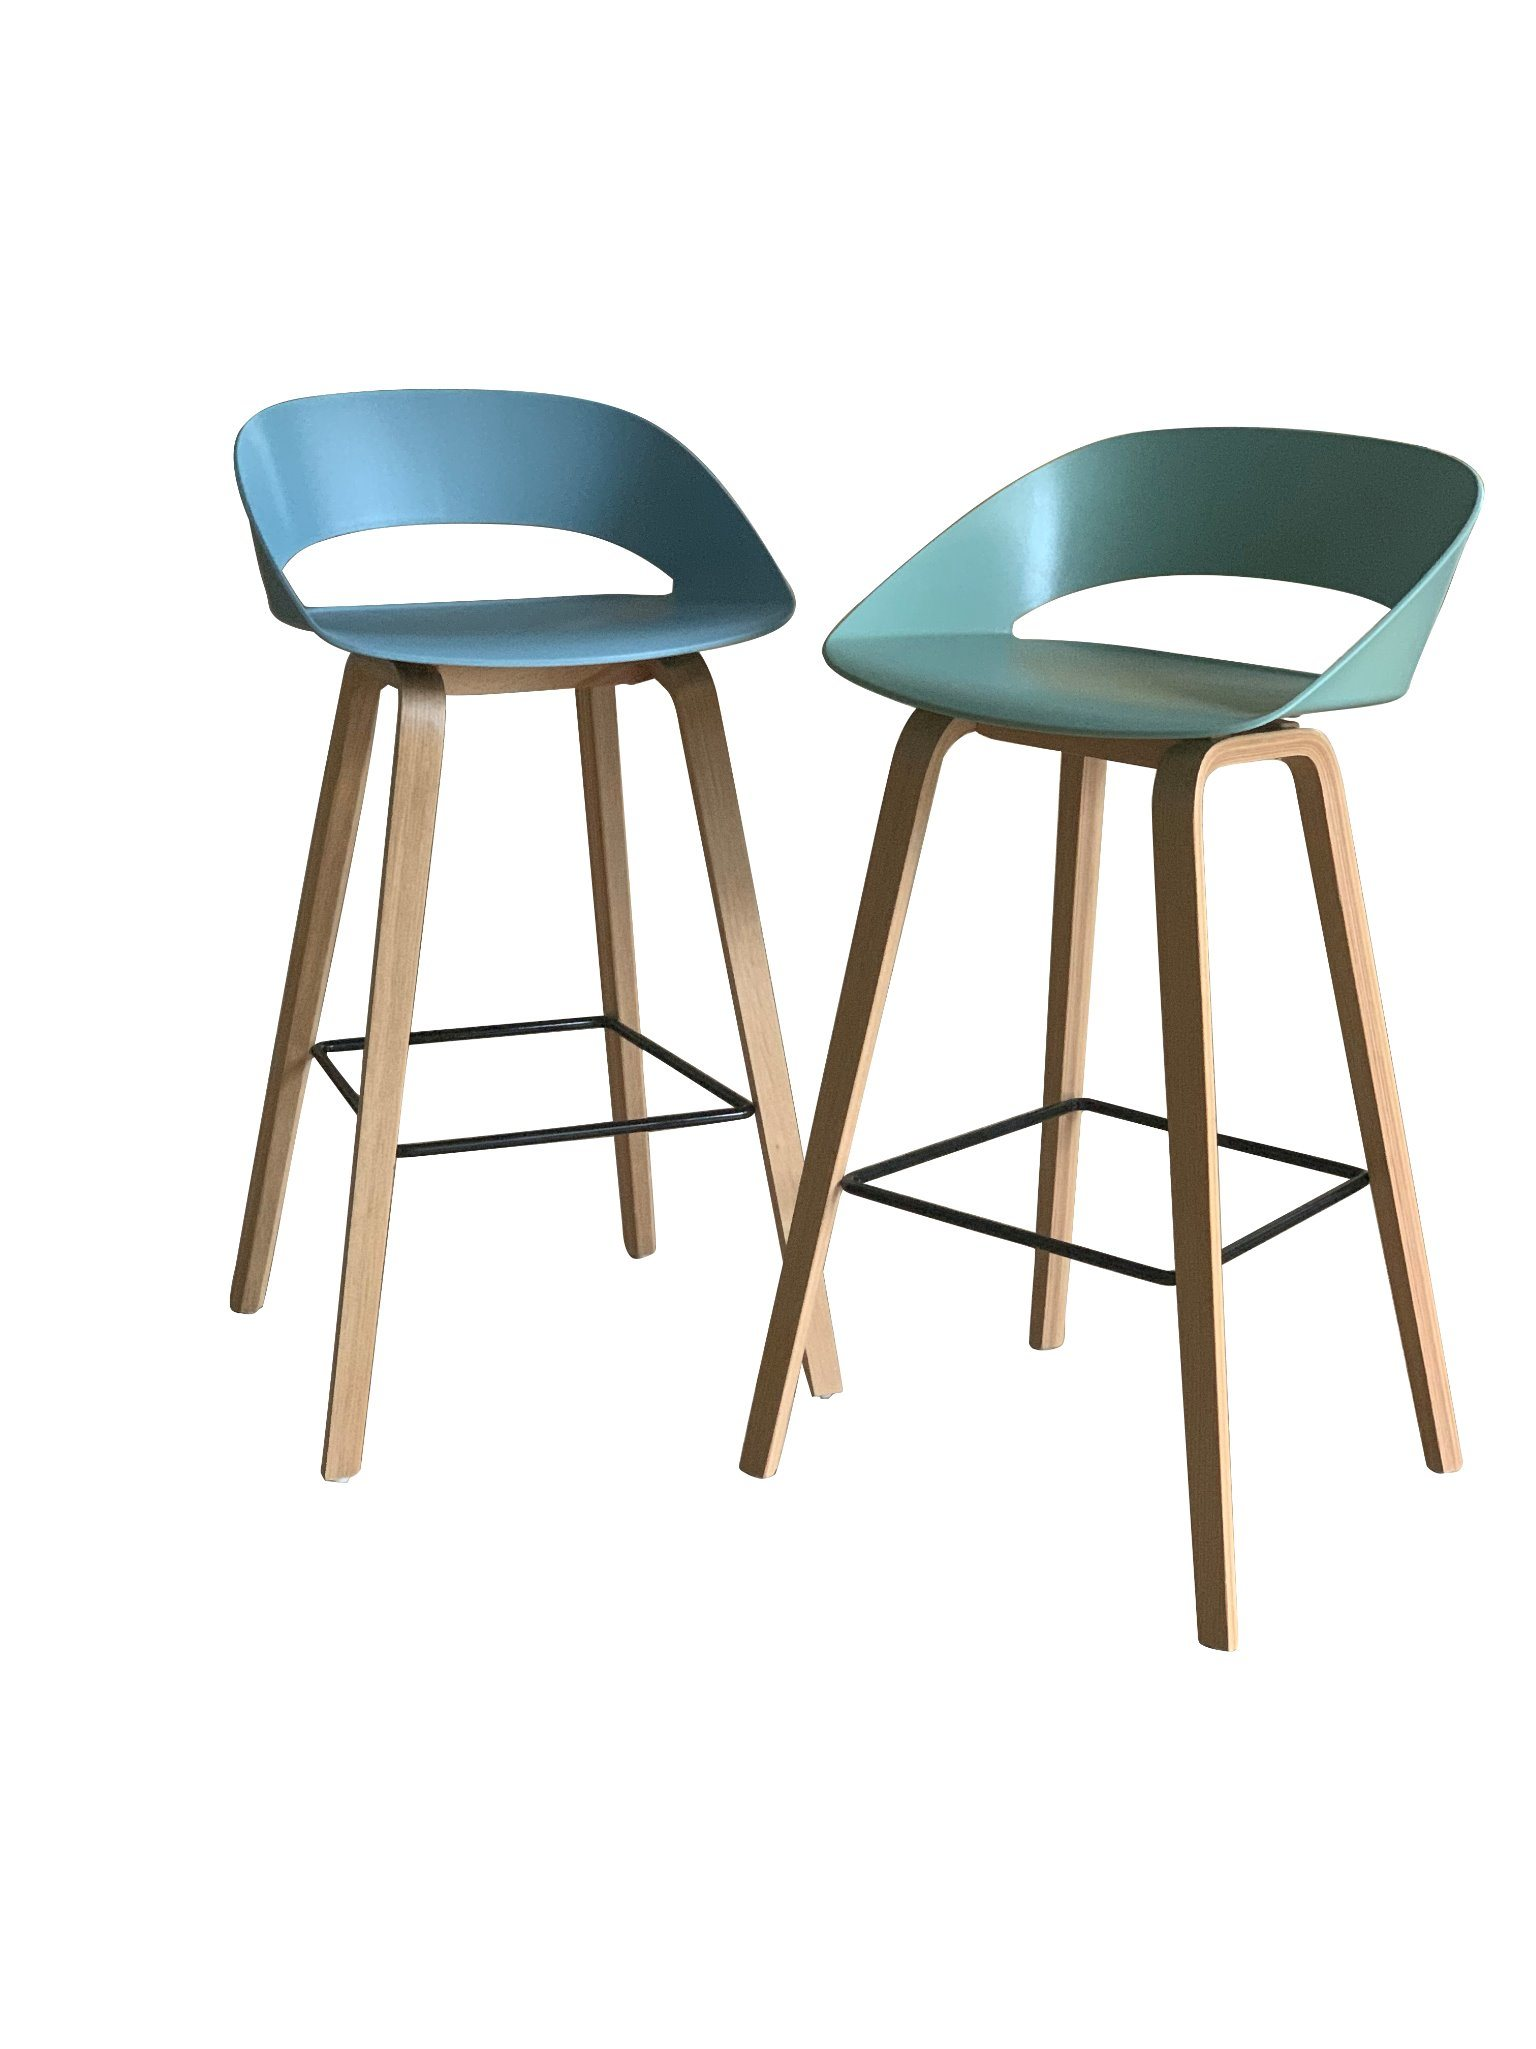 China Foshan Supplier Plastic Restaurant Solid Wood Leg Blue Color Bar Stool Chair Furniture Photos Pictures Made In China Com